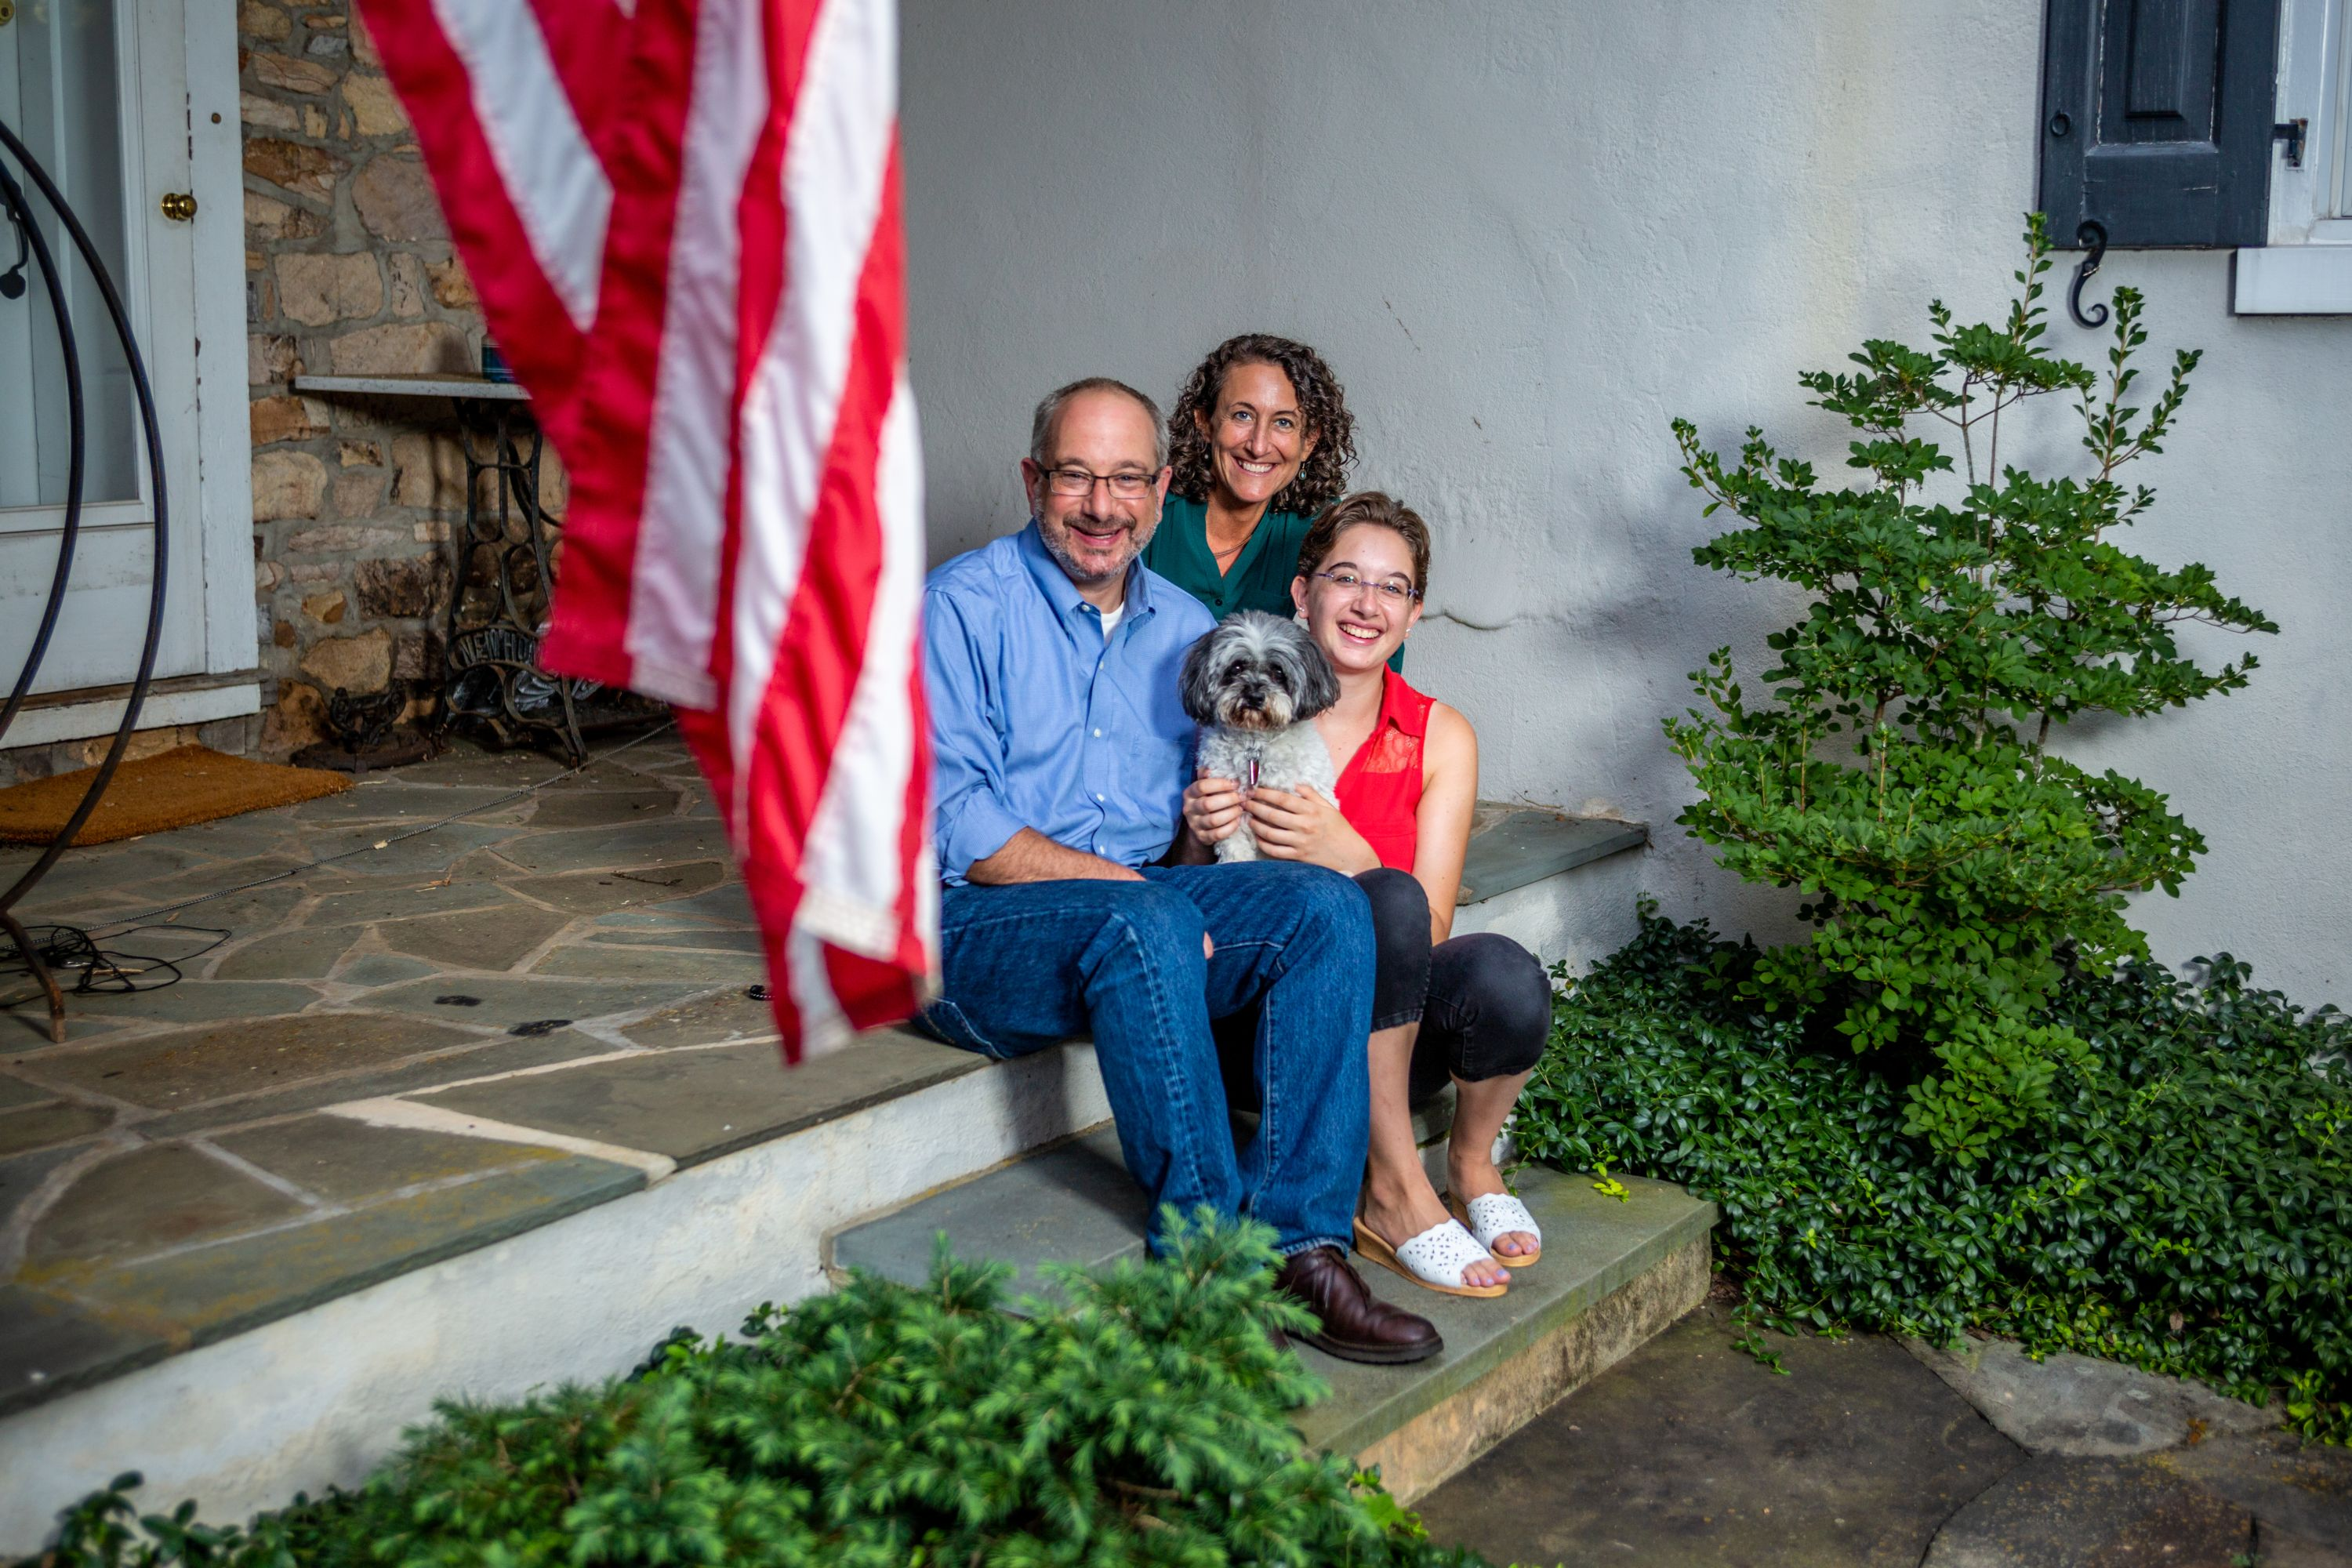 Jordan Yeager '92, Kathy Boockvar '93, their daughter Colette, and dog Zoie